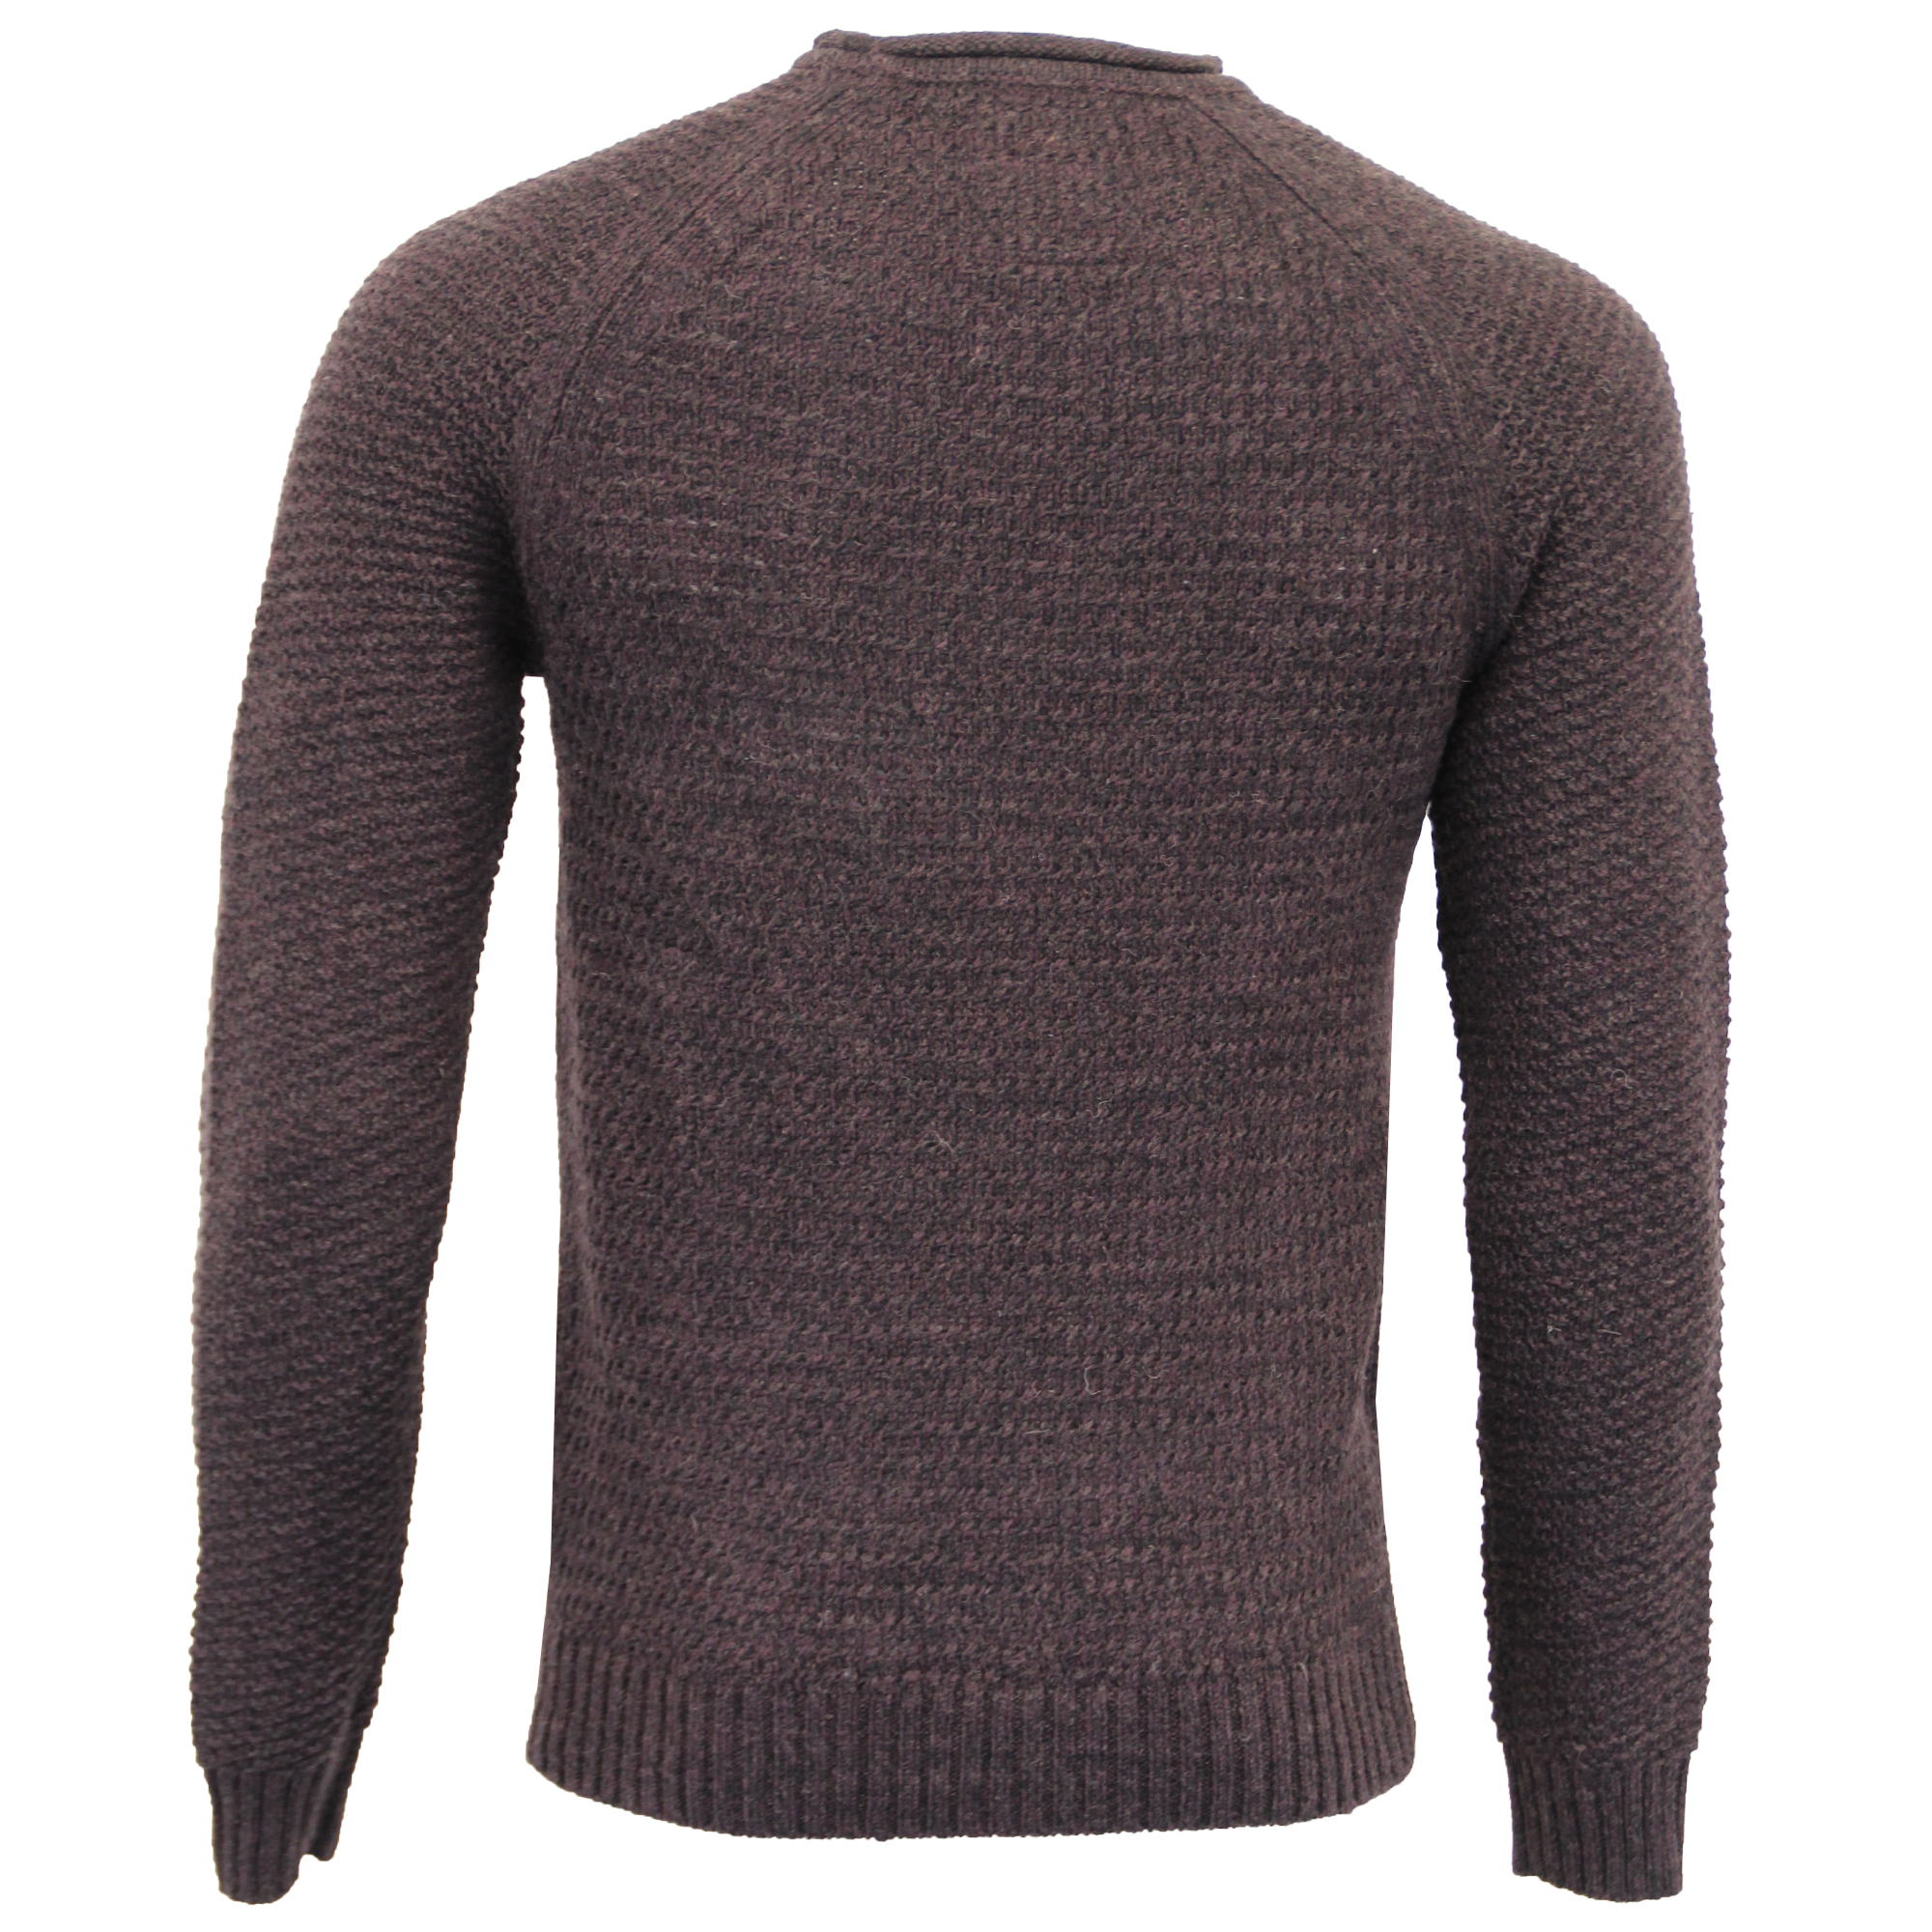 Mens-Wool-Mix-Jumper-Threadbare-Cable-Knitted-Sweater-Pullover-Top-Casual-Winter thumbnail 9